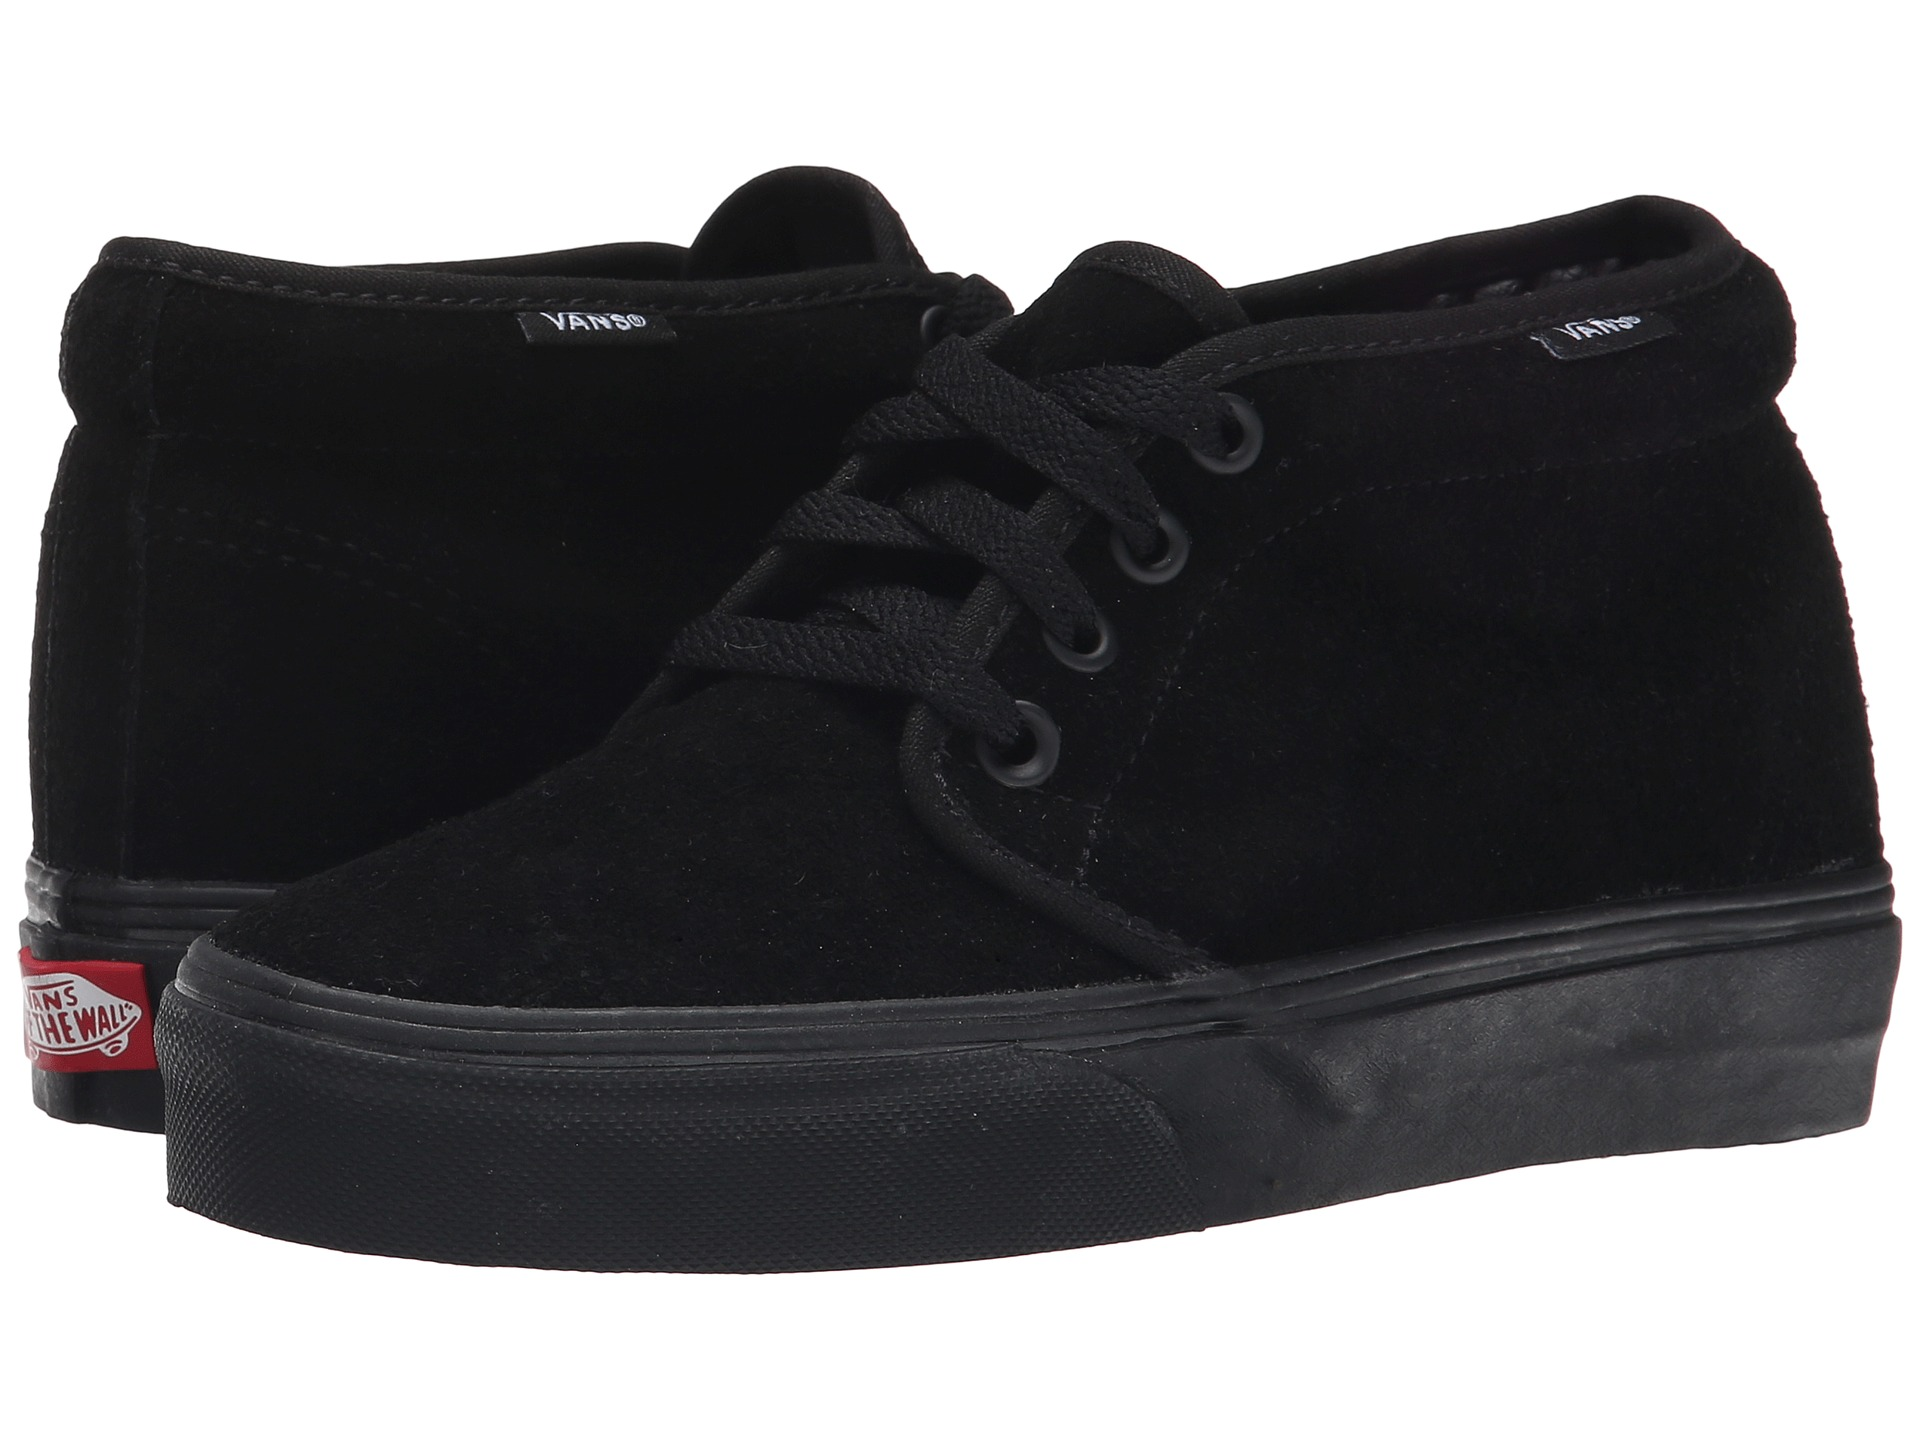 chaussures soldes sentier salomon - Vans Chukka Boot Core Classics - Zappos.com Free Shipping BOTH Ways